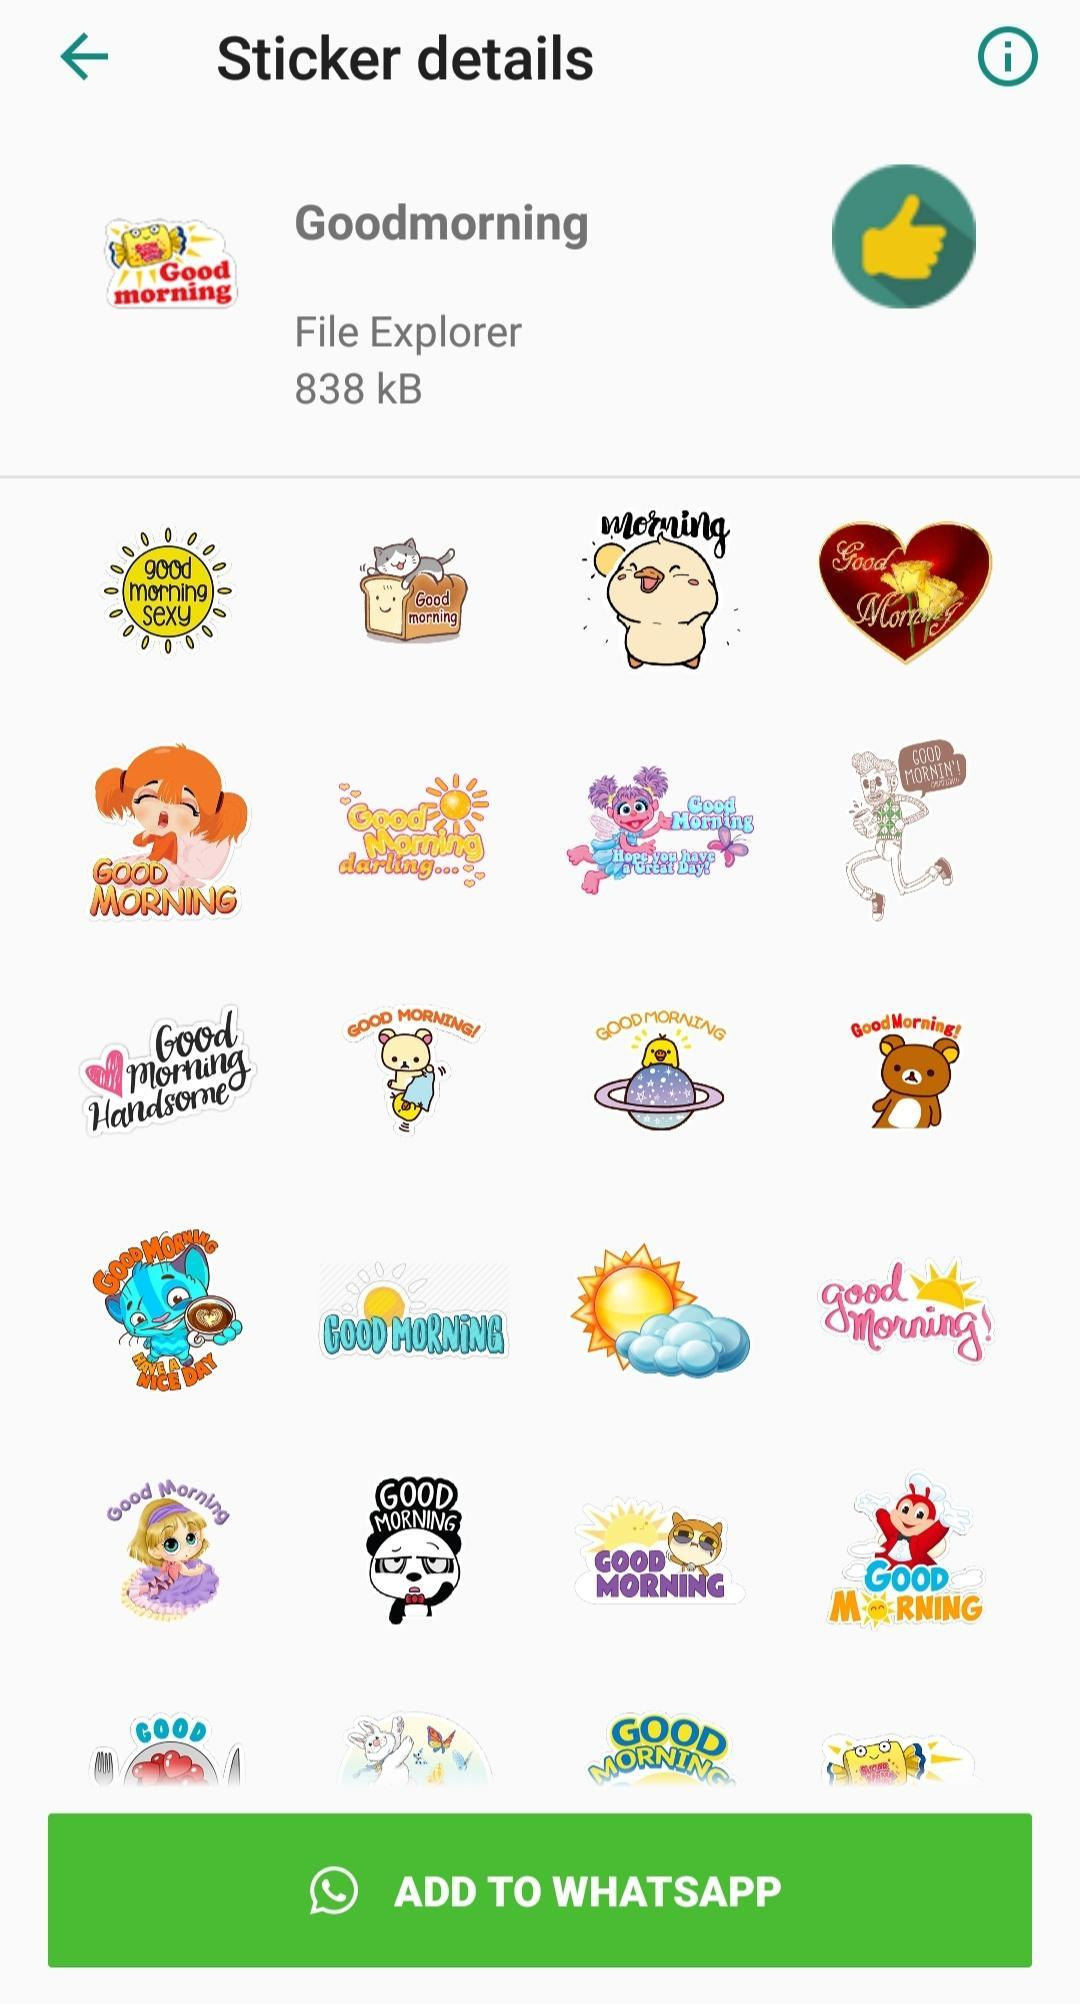 Good Morning Sticker for Android - APK Download